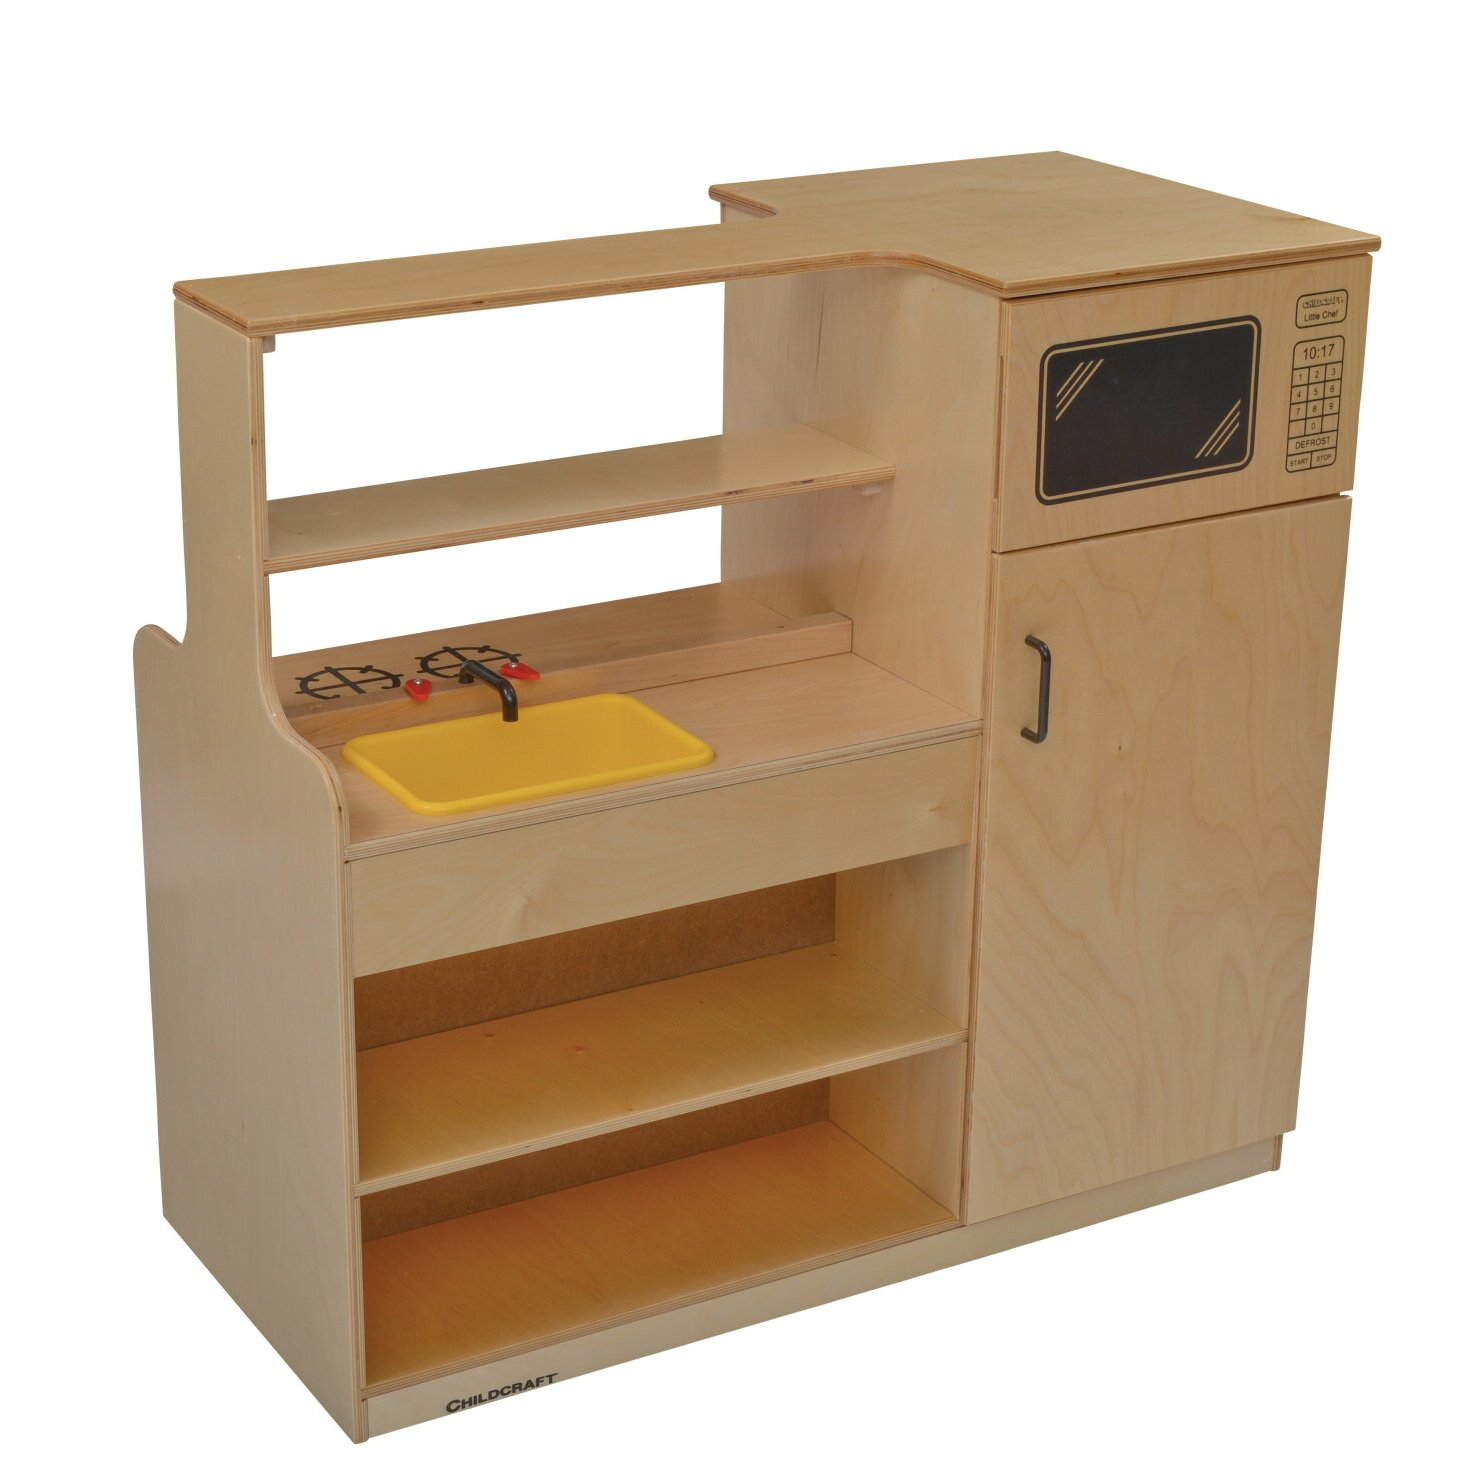 childcraft mobile island play kitchen wayfair